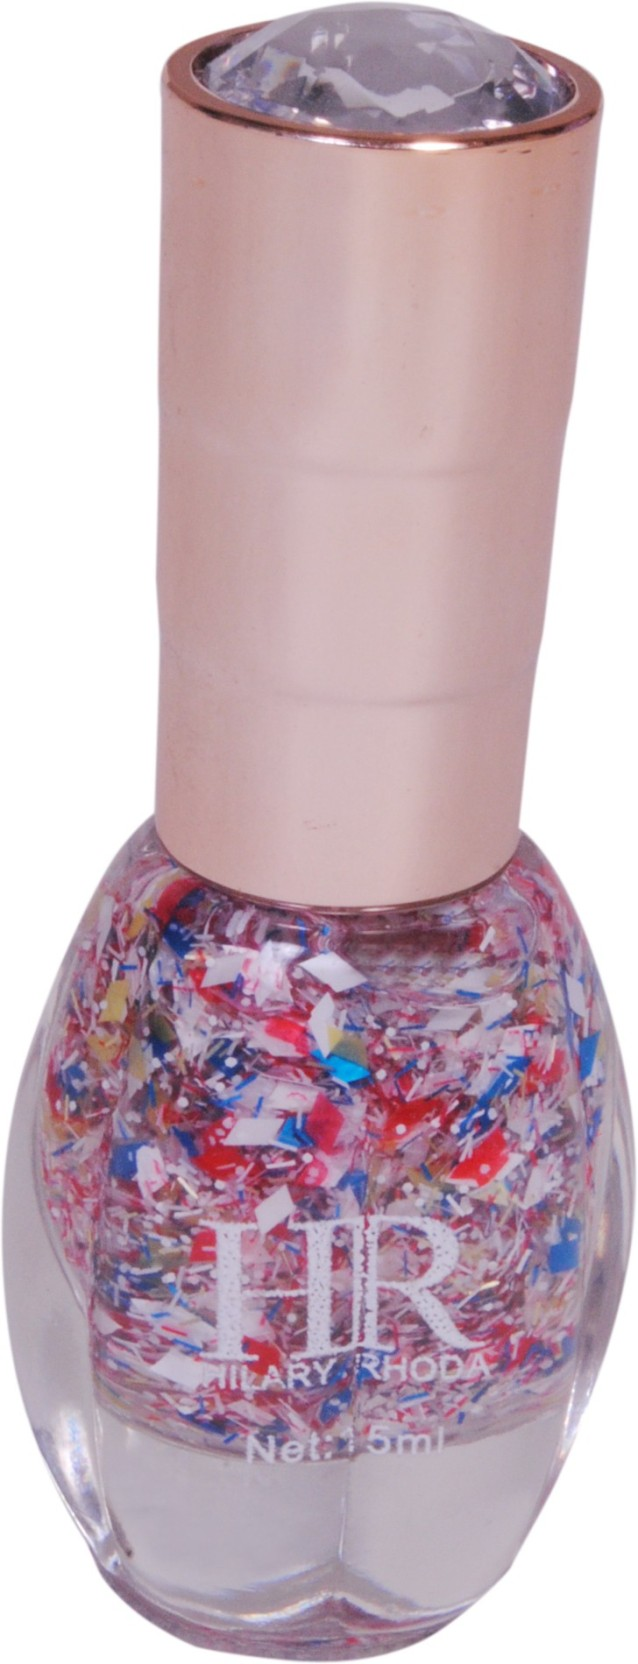 be5b64650b6 Hilary Rhoda HR Multi Color Art Nail Paint - Price in India